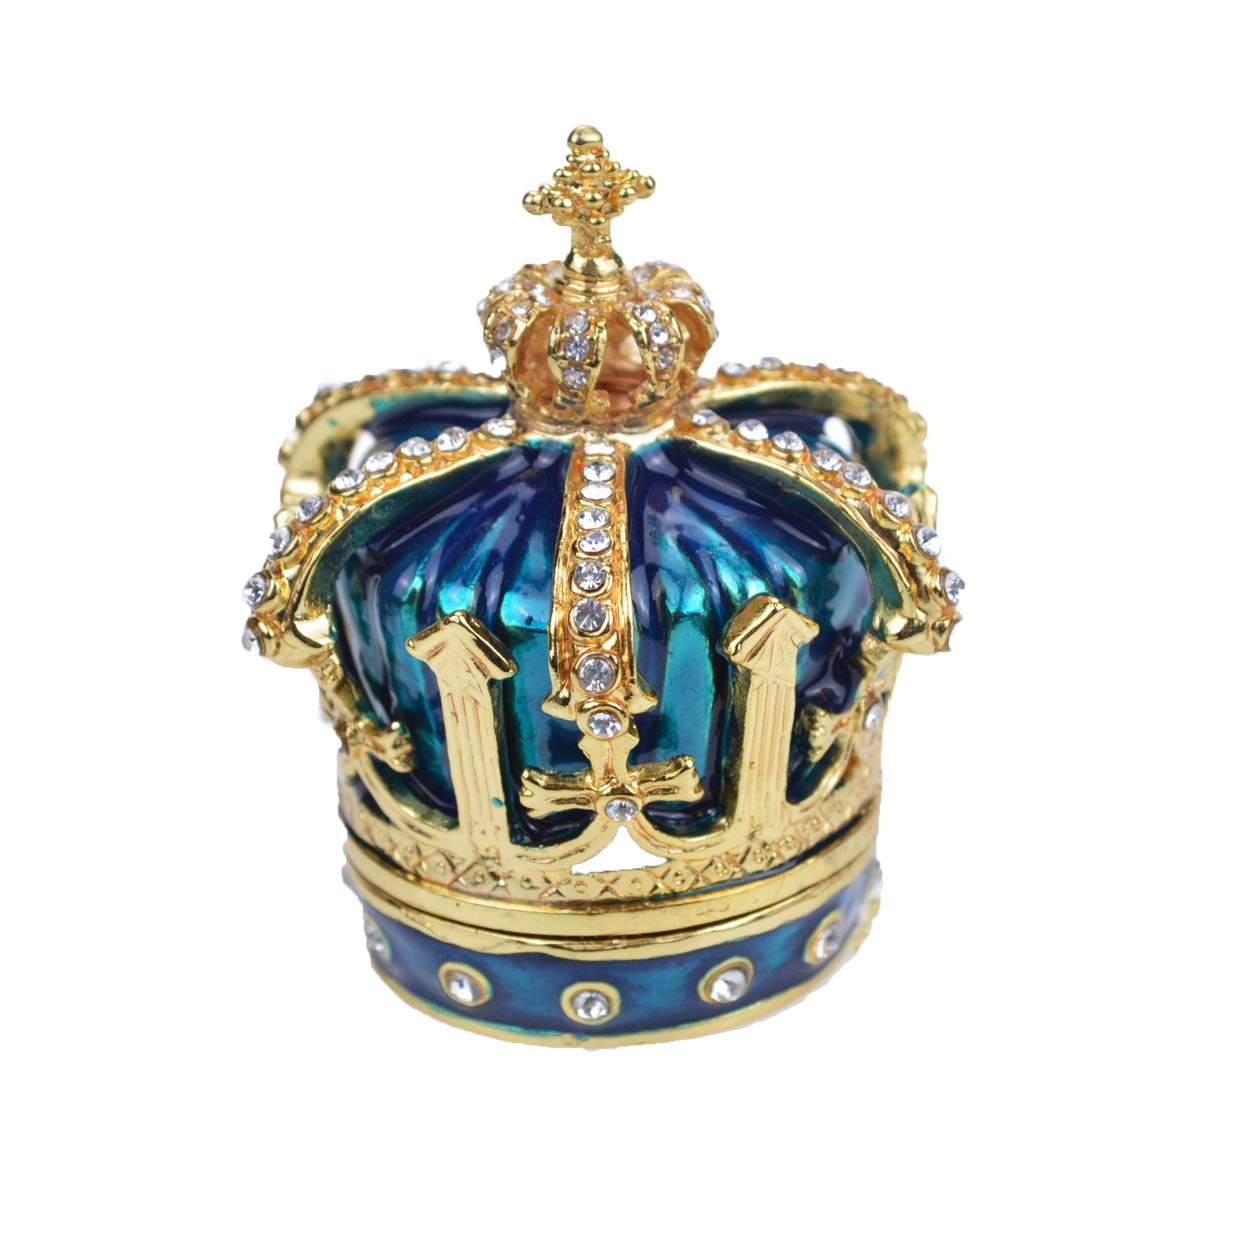 Hand Painted Enameled Blue Crown Hinged Jewelry Trinket Box